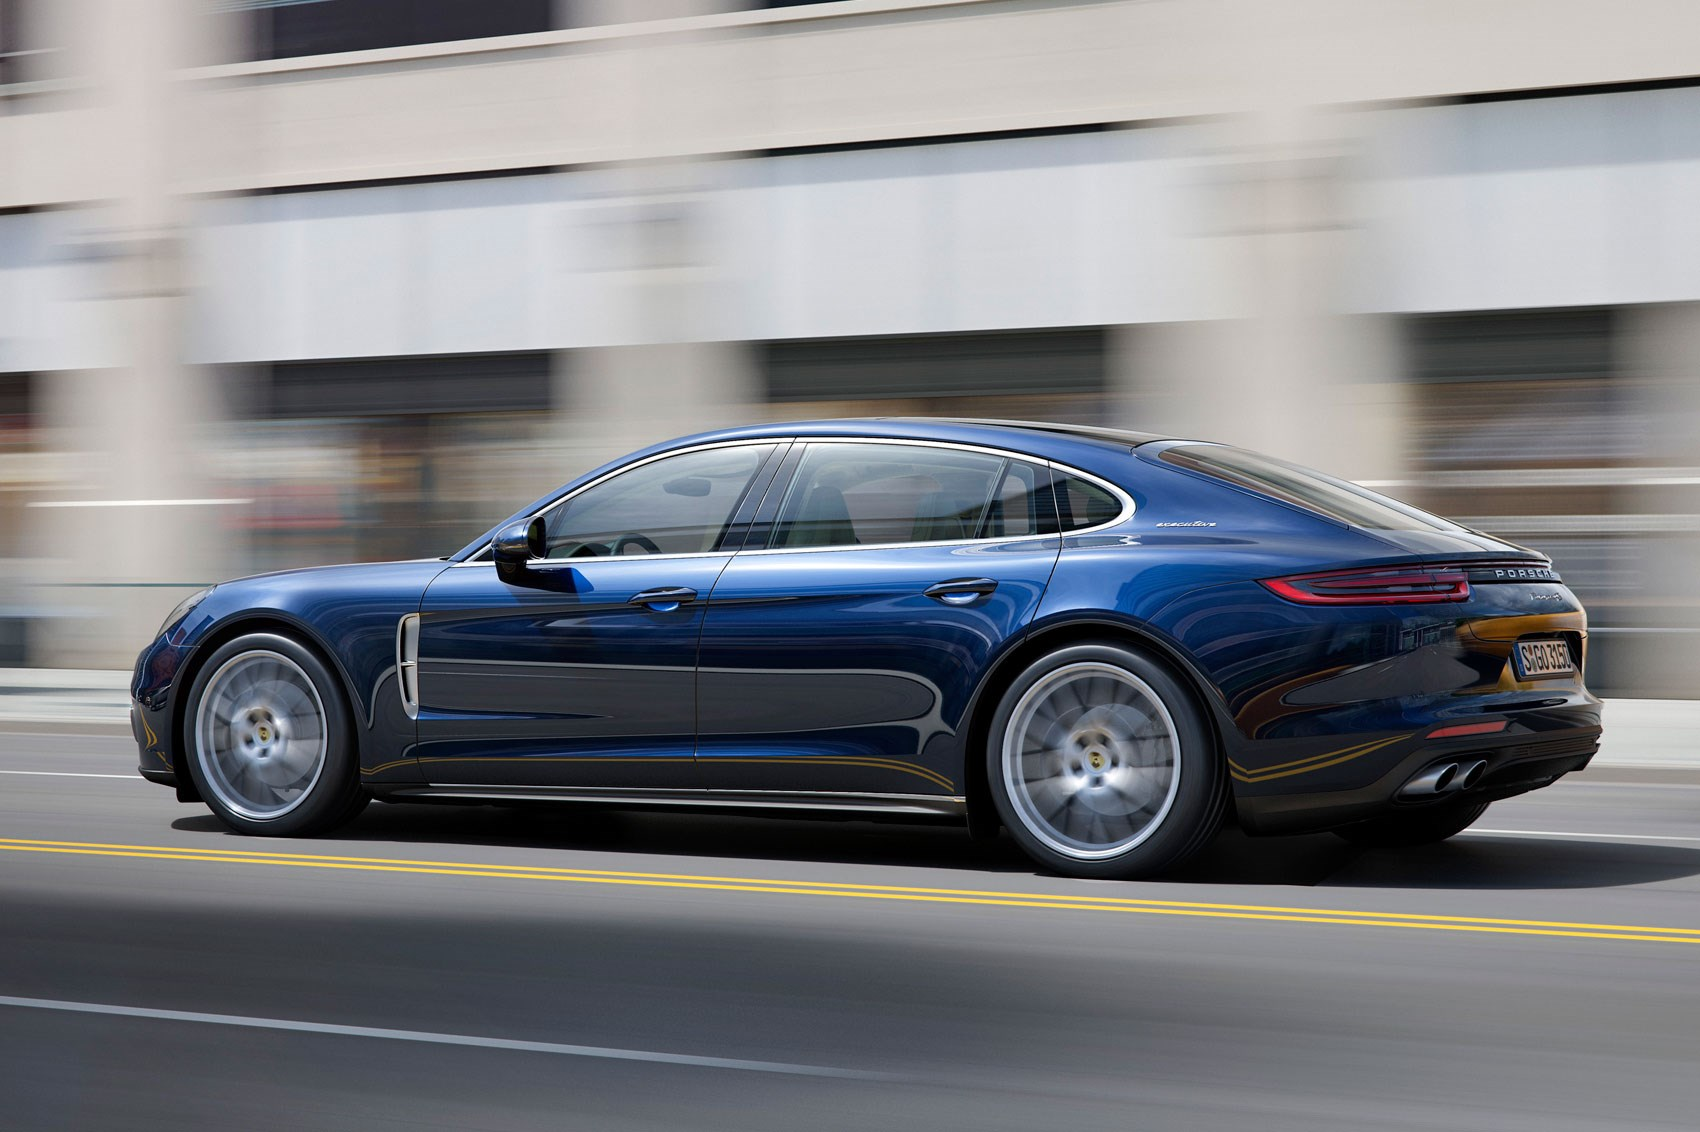 panamera hat trick porsche adds new turbo v6 executive variant and kit by car magazine. Black Bedroom Furniture Sets. Home Design Ideas